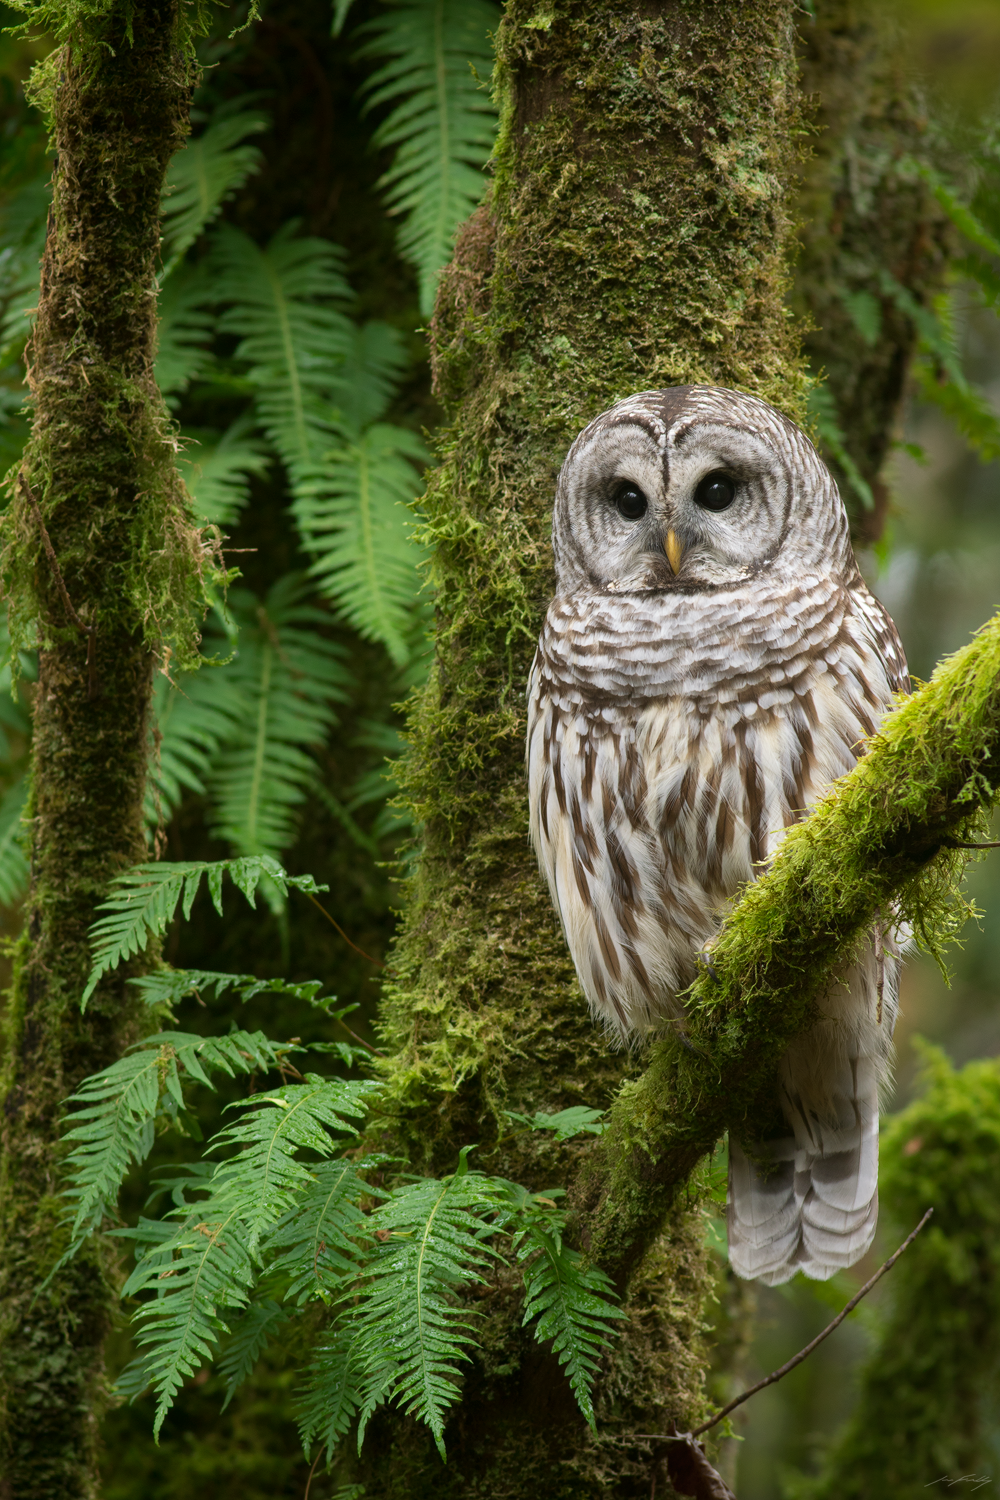 A Barred Owl perched amongst moss and licorice ferns in the temperate rainforest near Vancouver, British Columbia, Canada.